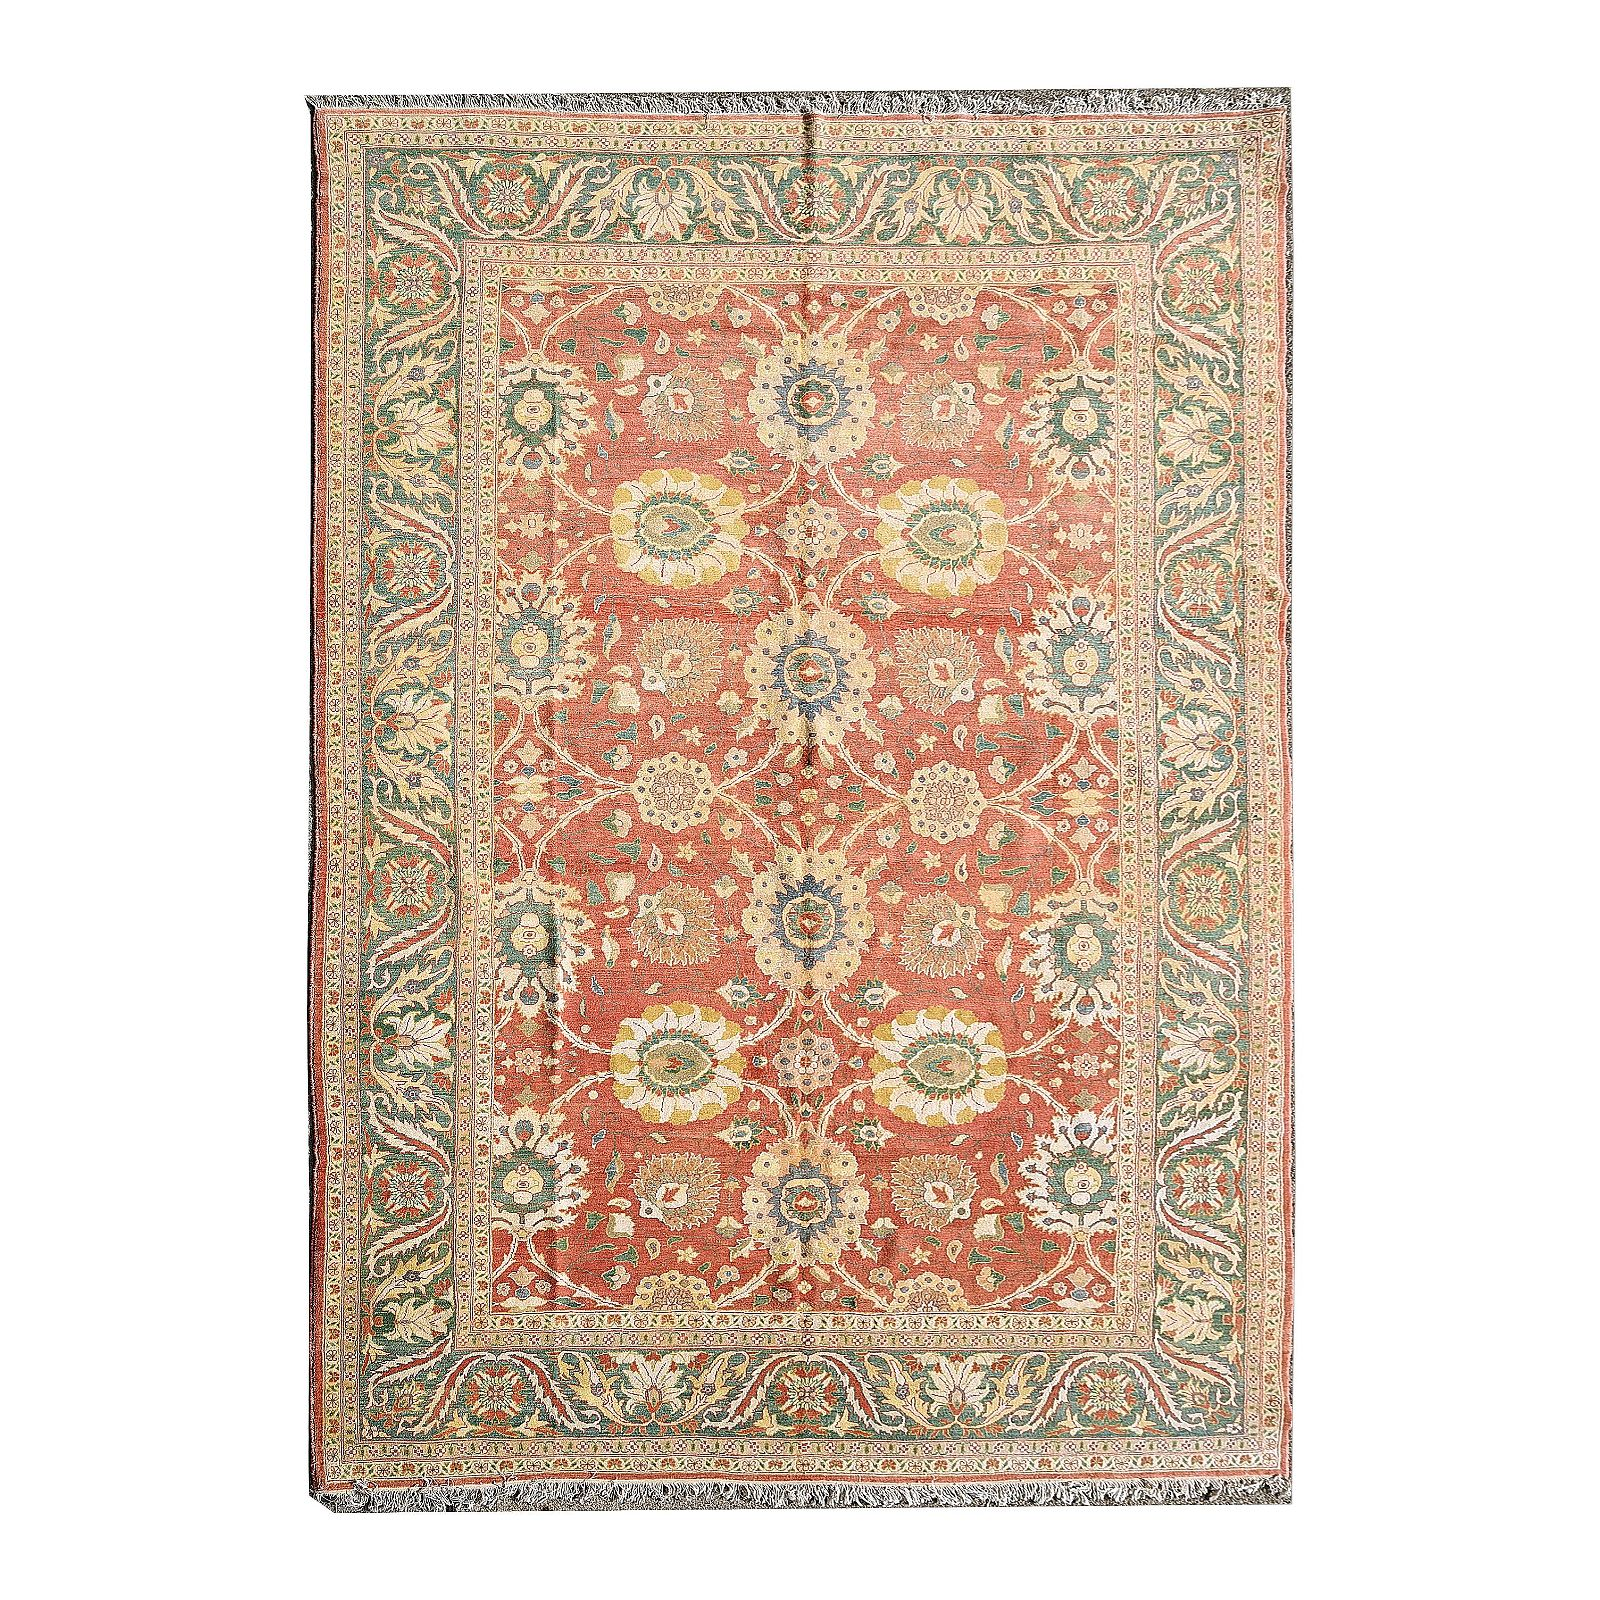 Persian Sultanabad Wool Carpet.